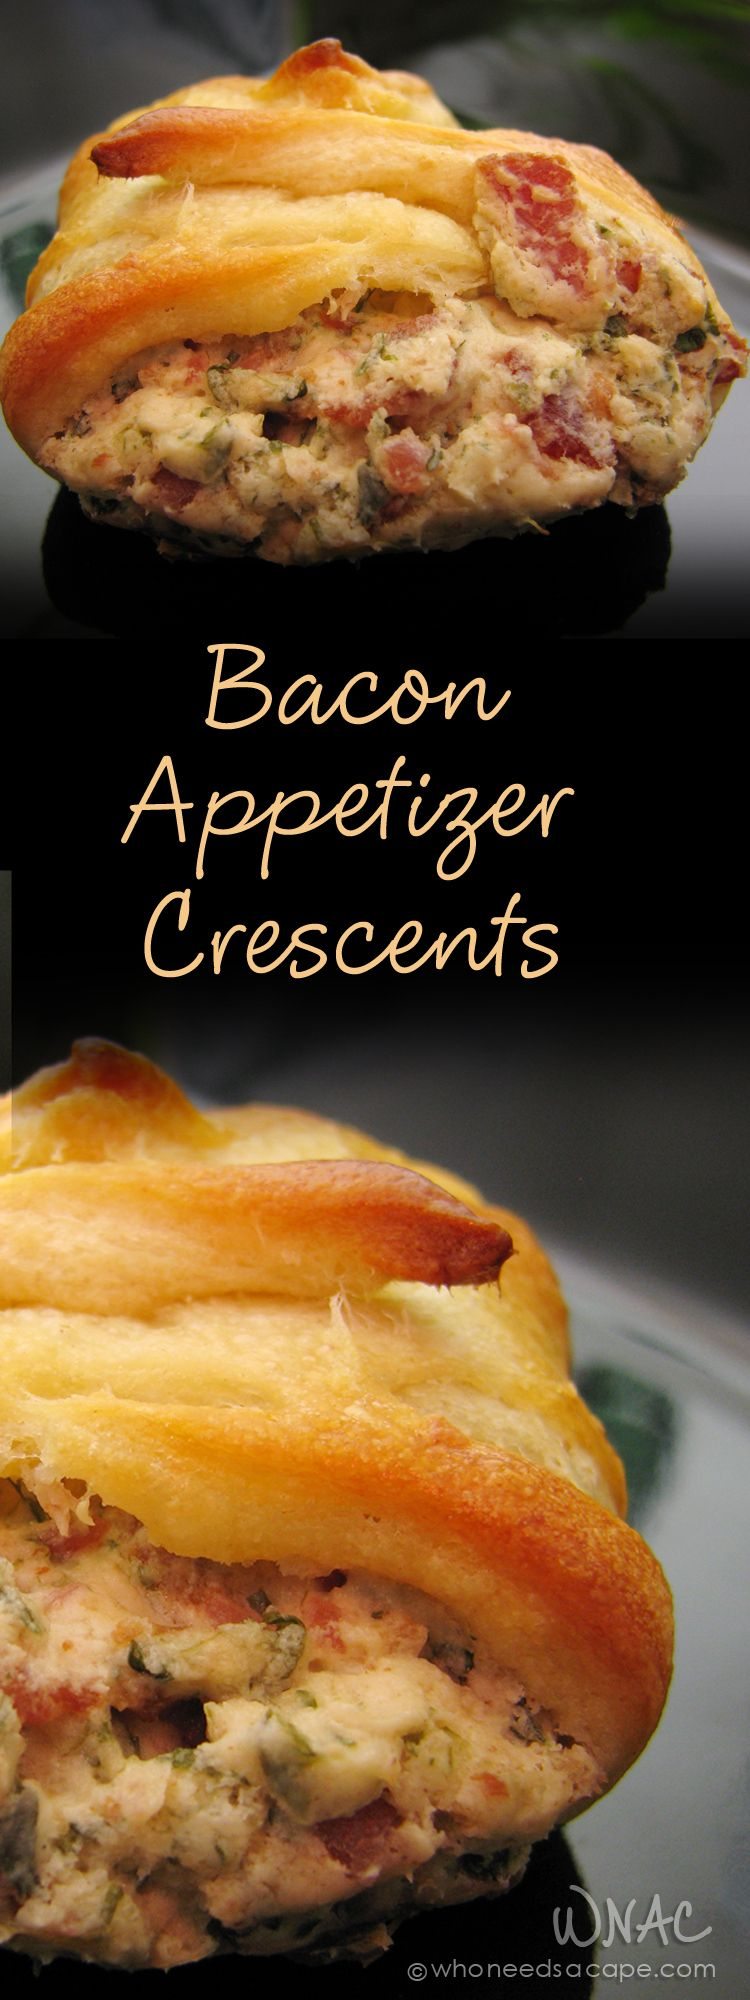 Bacon Appetizer Crescents great for tailgating, parties, holidays or just a snack